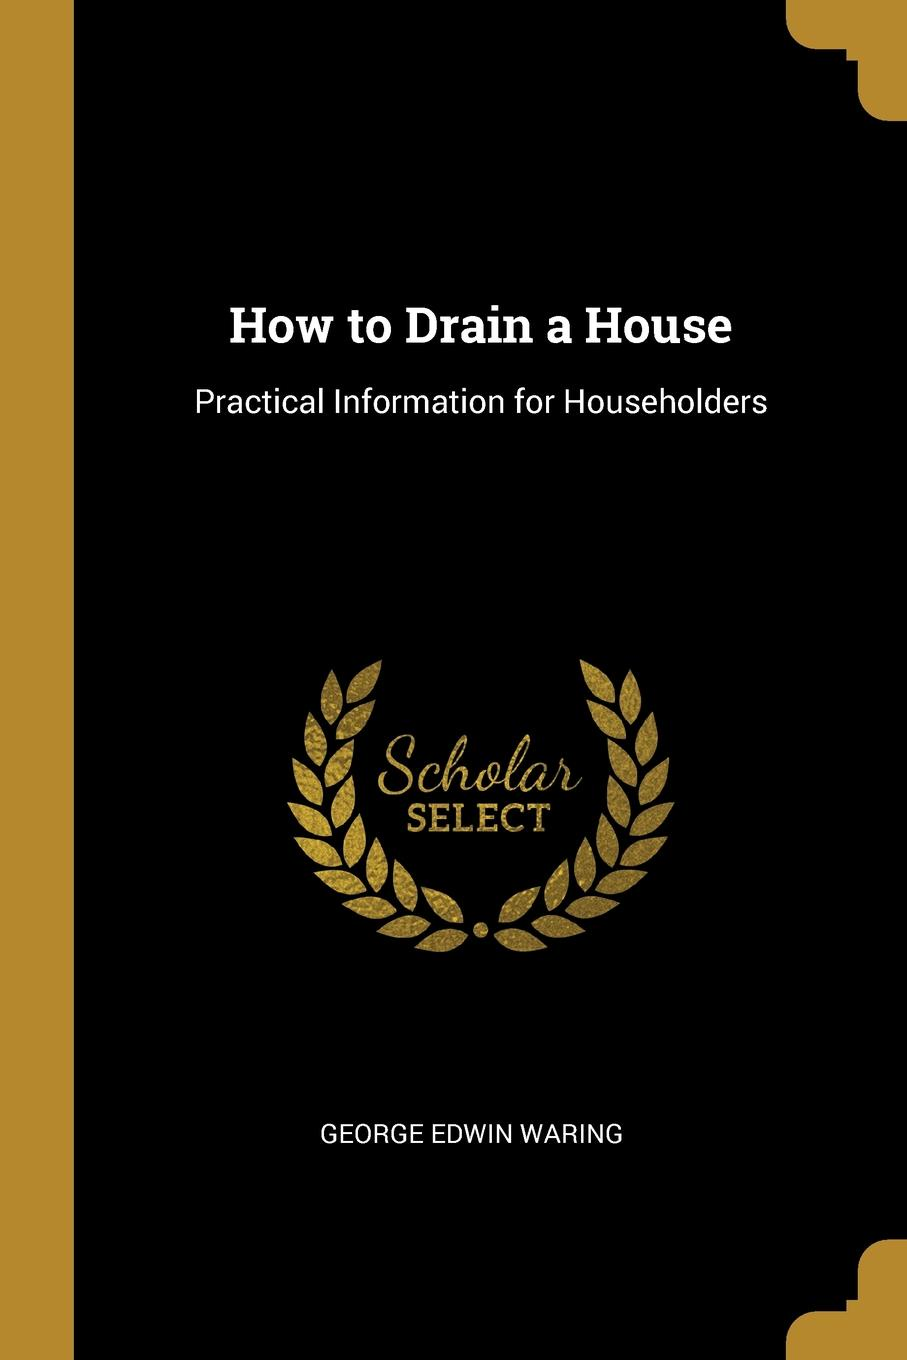 George Edwin Waring. How to Drain a House. Practical Information for Householders